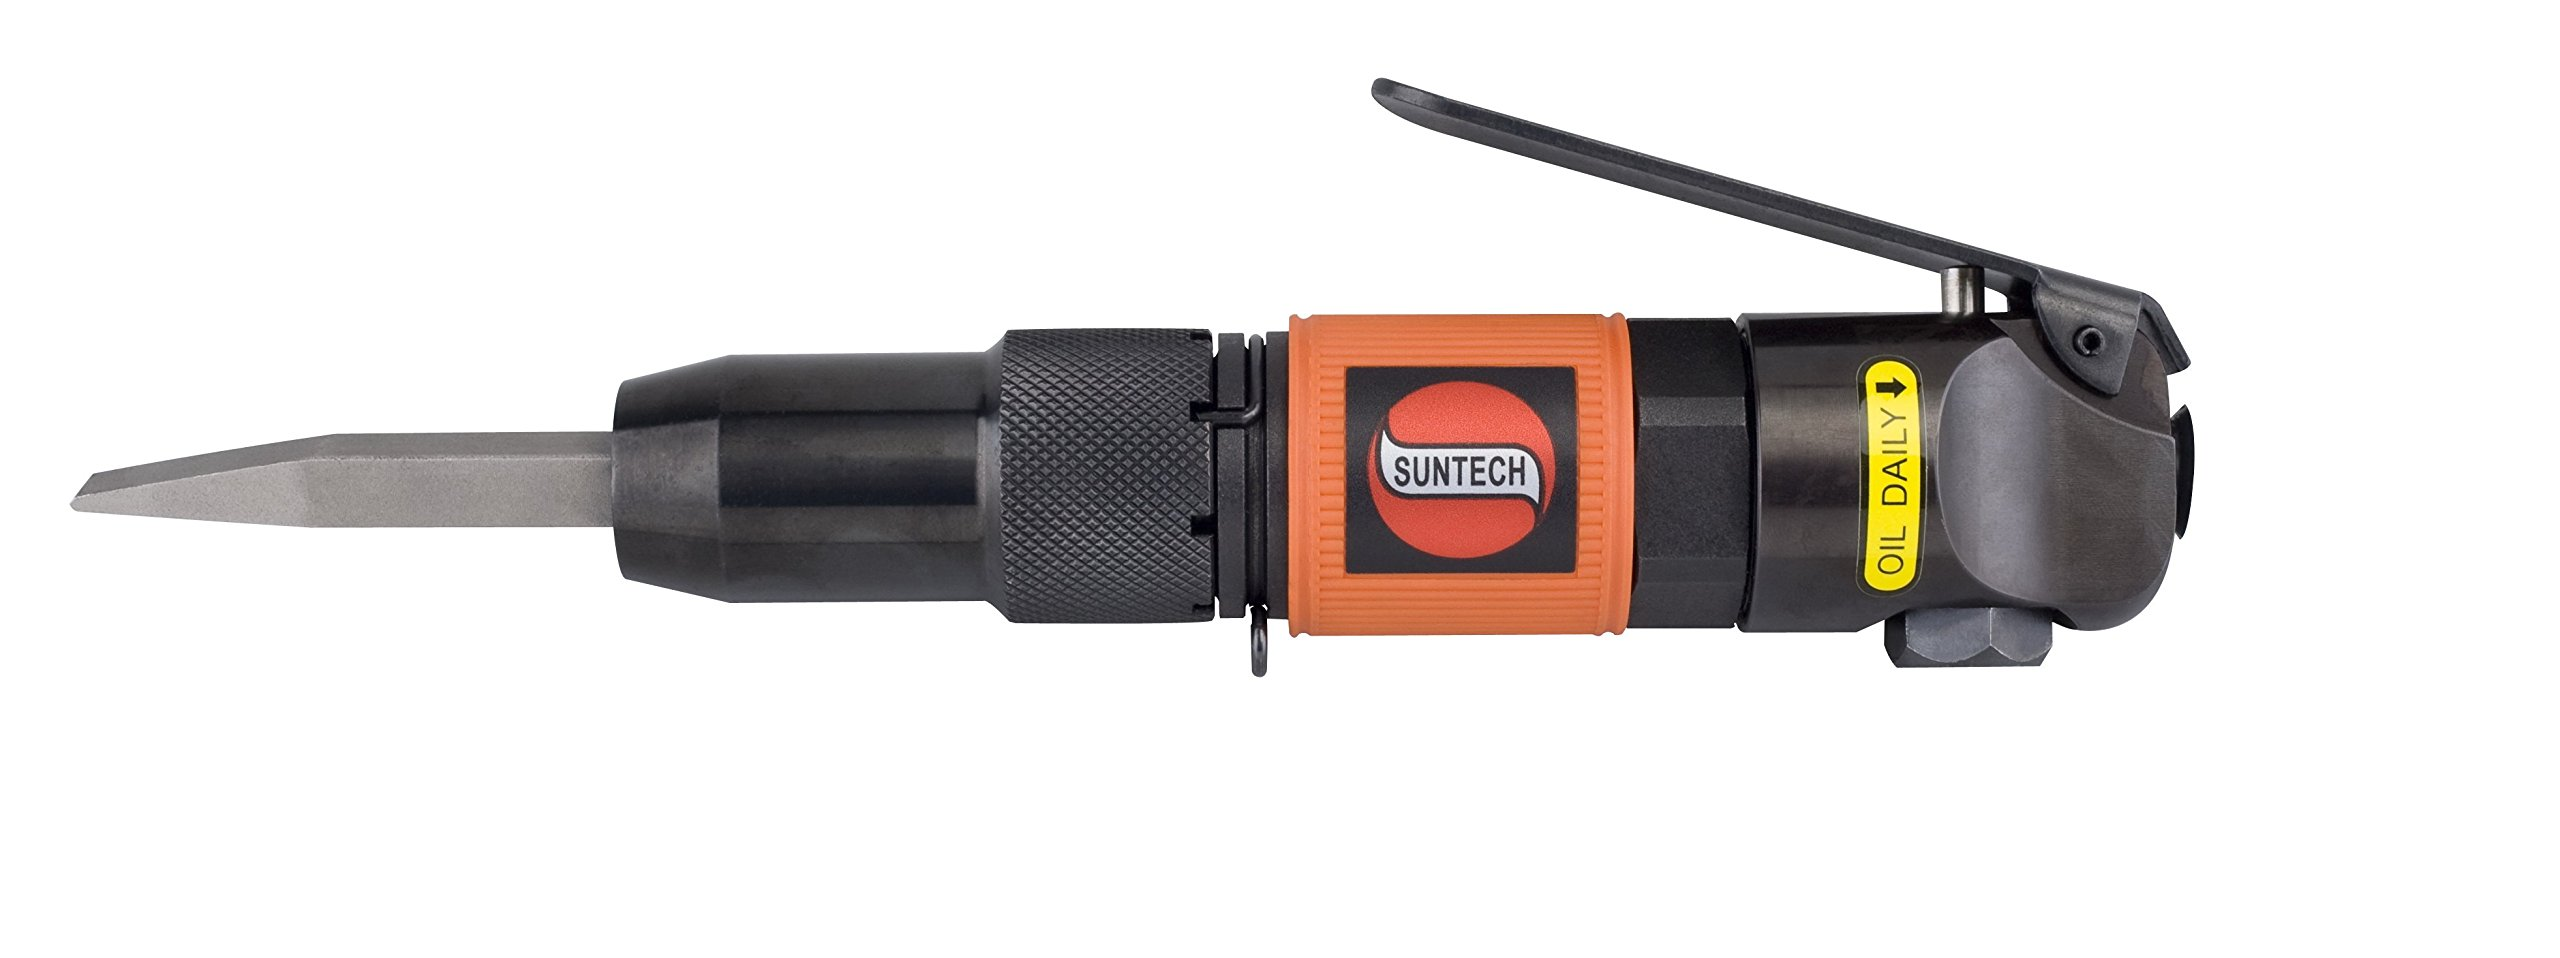 SUNTECH SM-104 Sunmatch Power Angle Grinders, Orange/Black